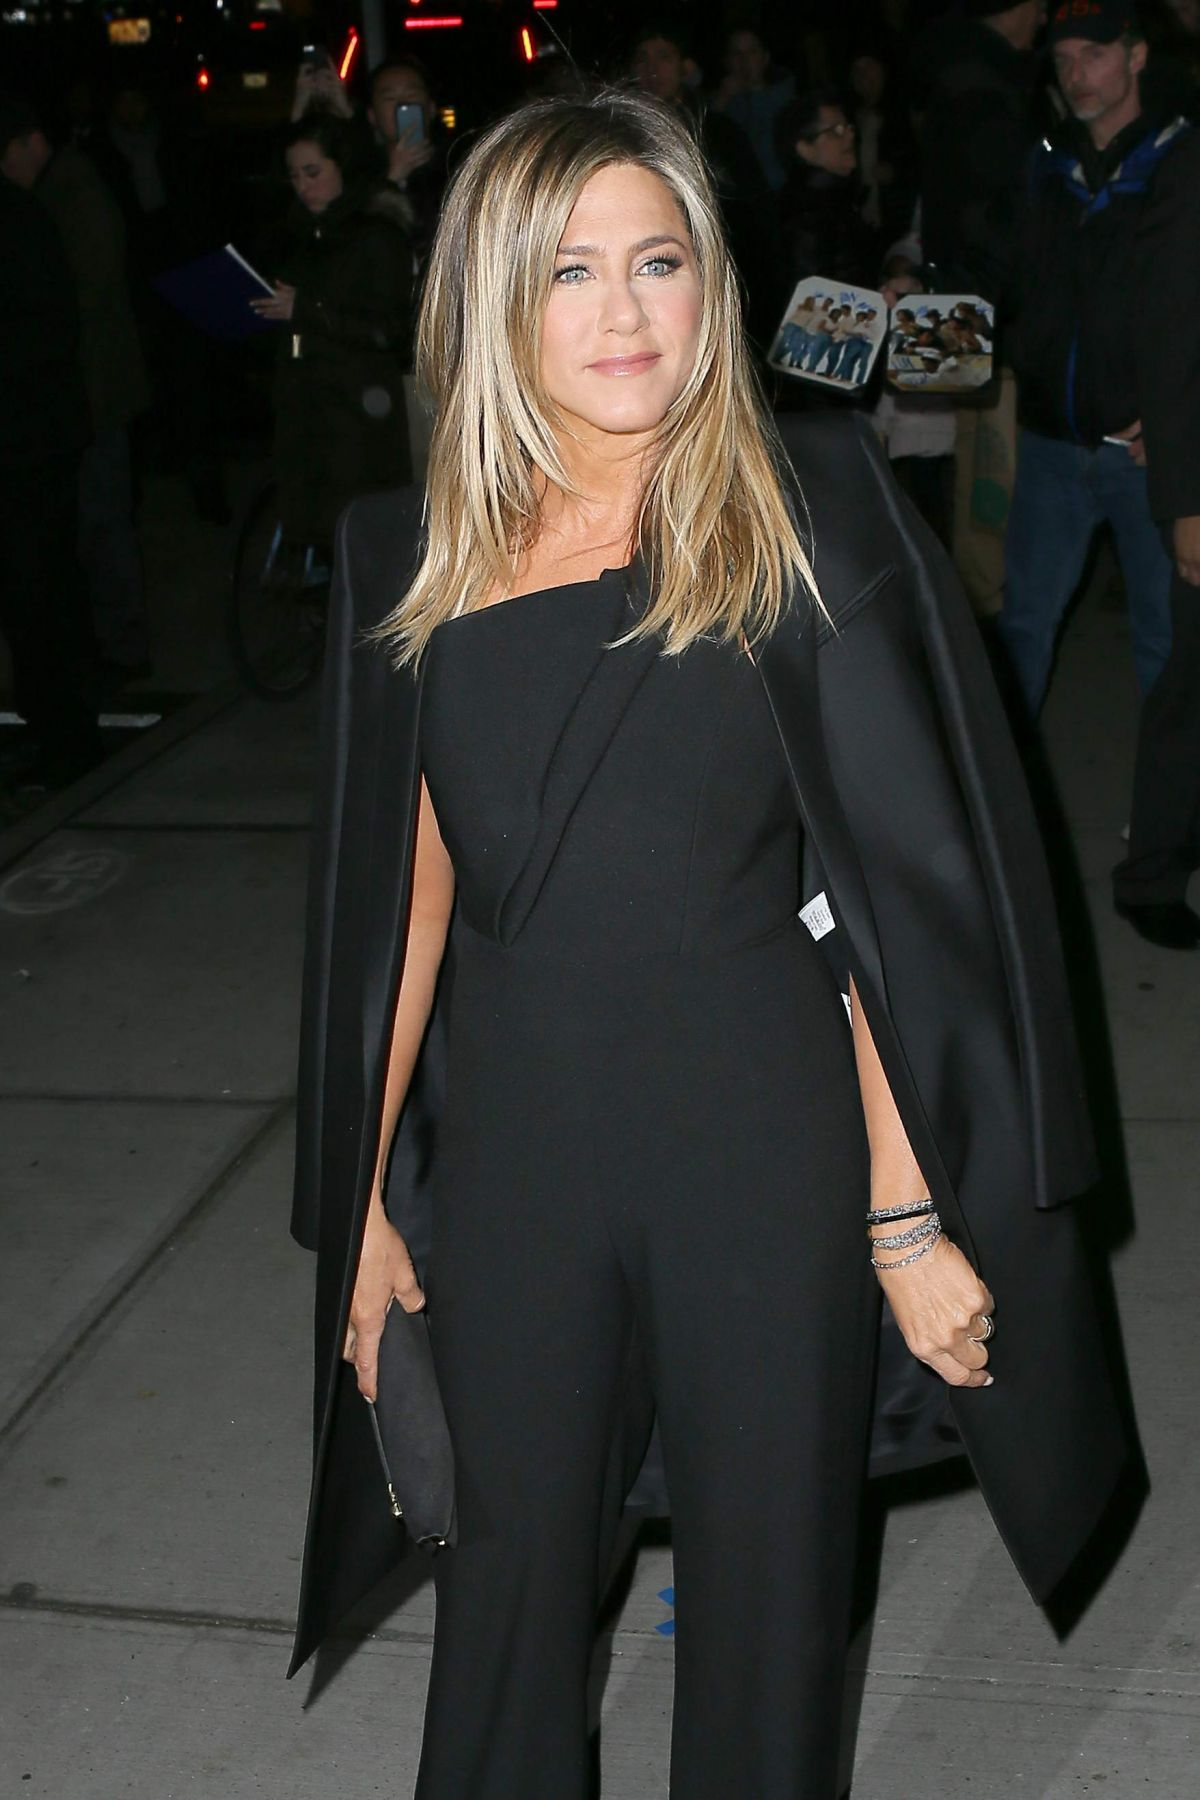 Jennifer Aniston Seen at 'Office Christmas Party' at Landmark Sunshine Cinema, NY   jennifer-aniston-seen-at-office-christmas-party-at-landmark-sunshine-cinema-ny_2